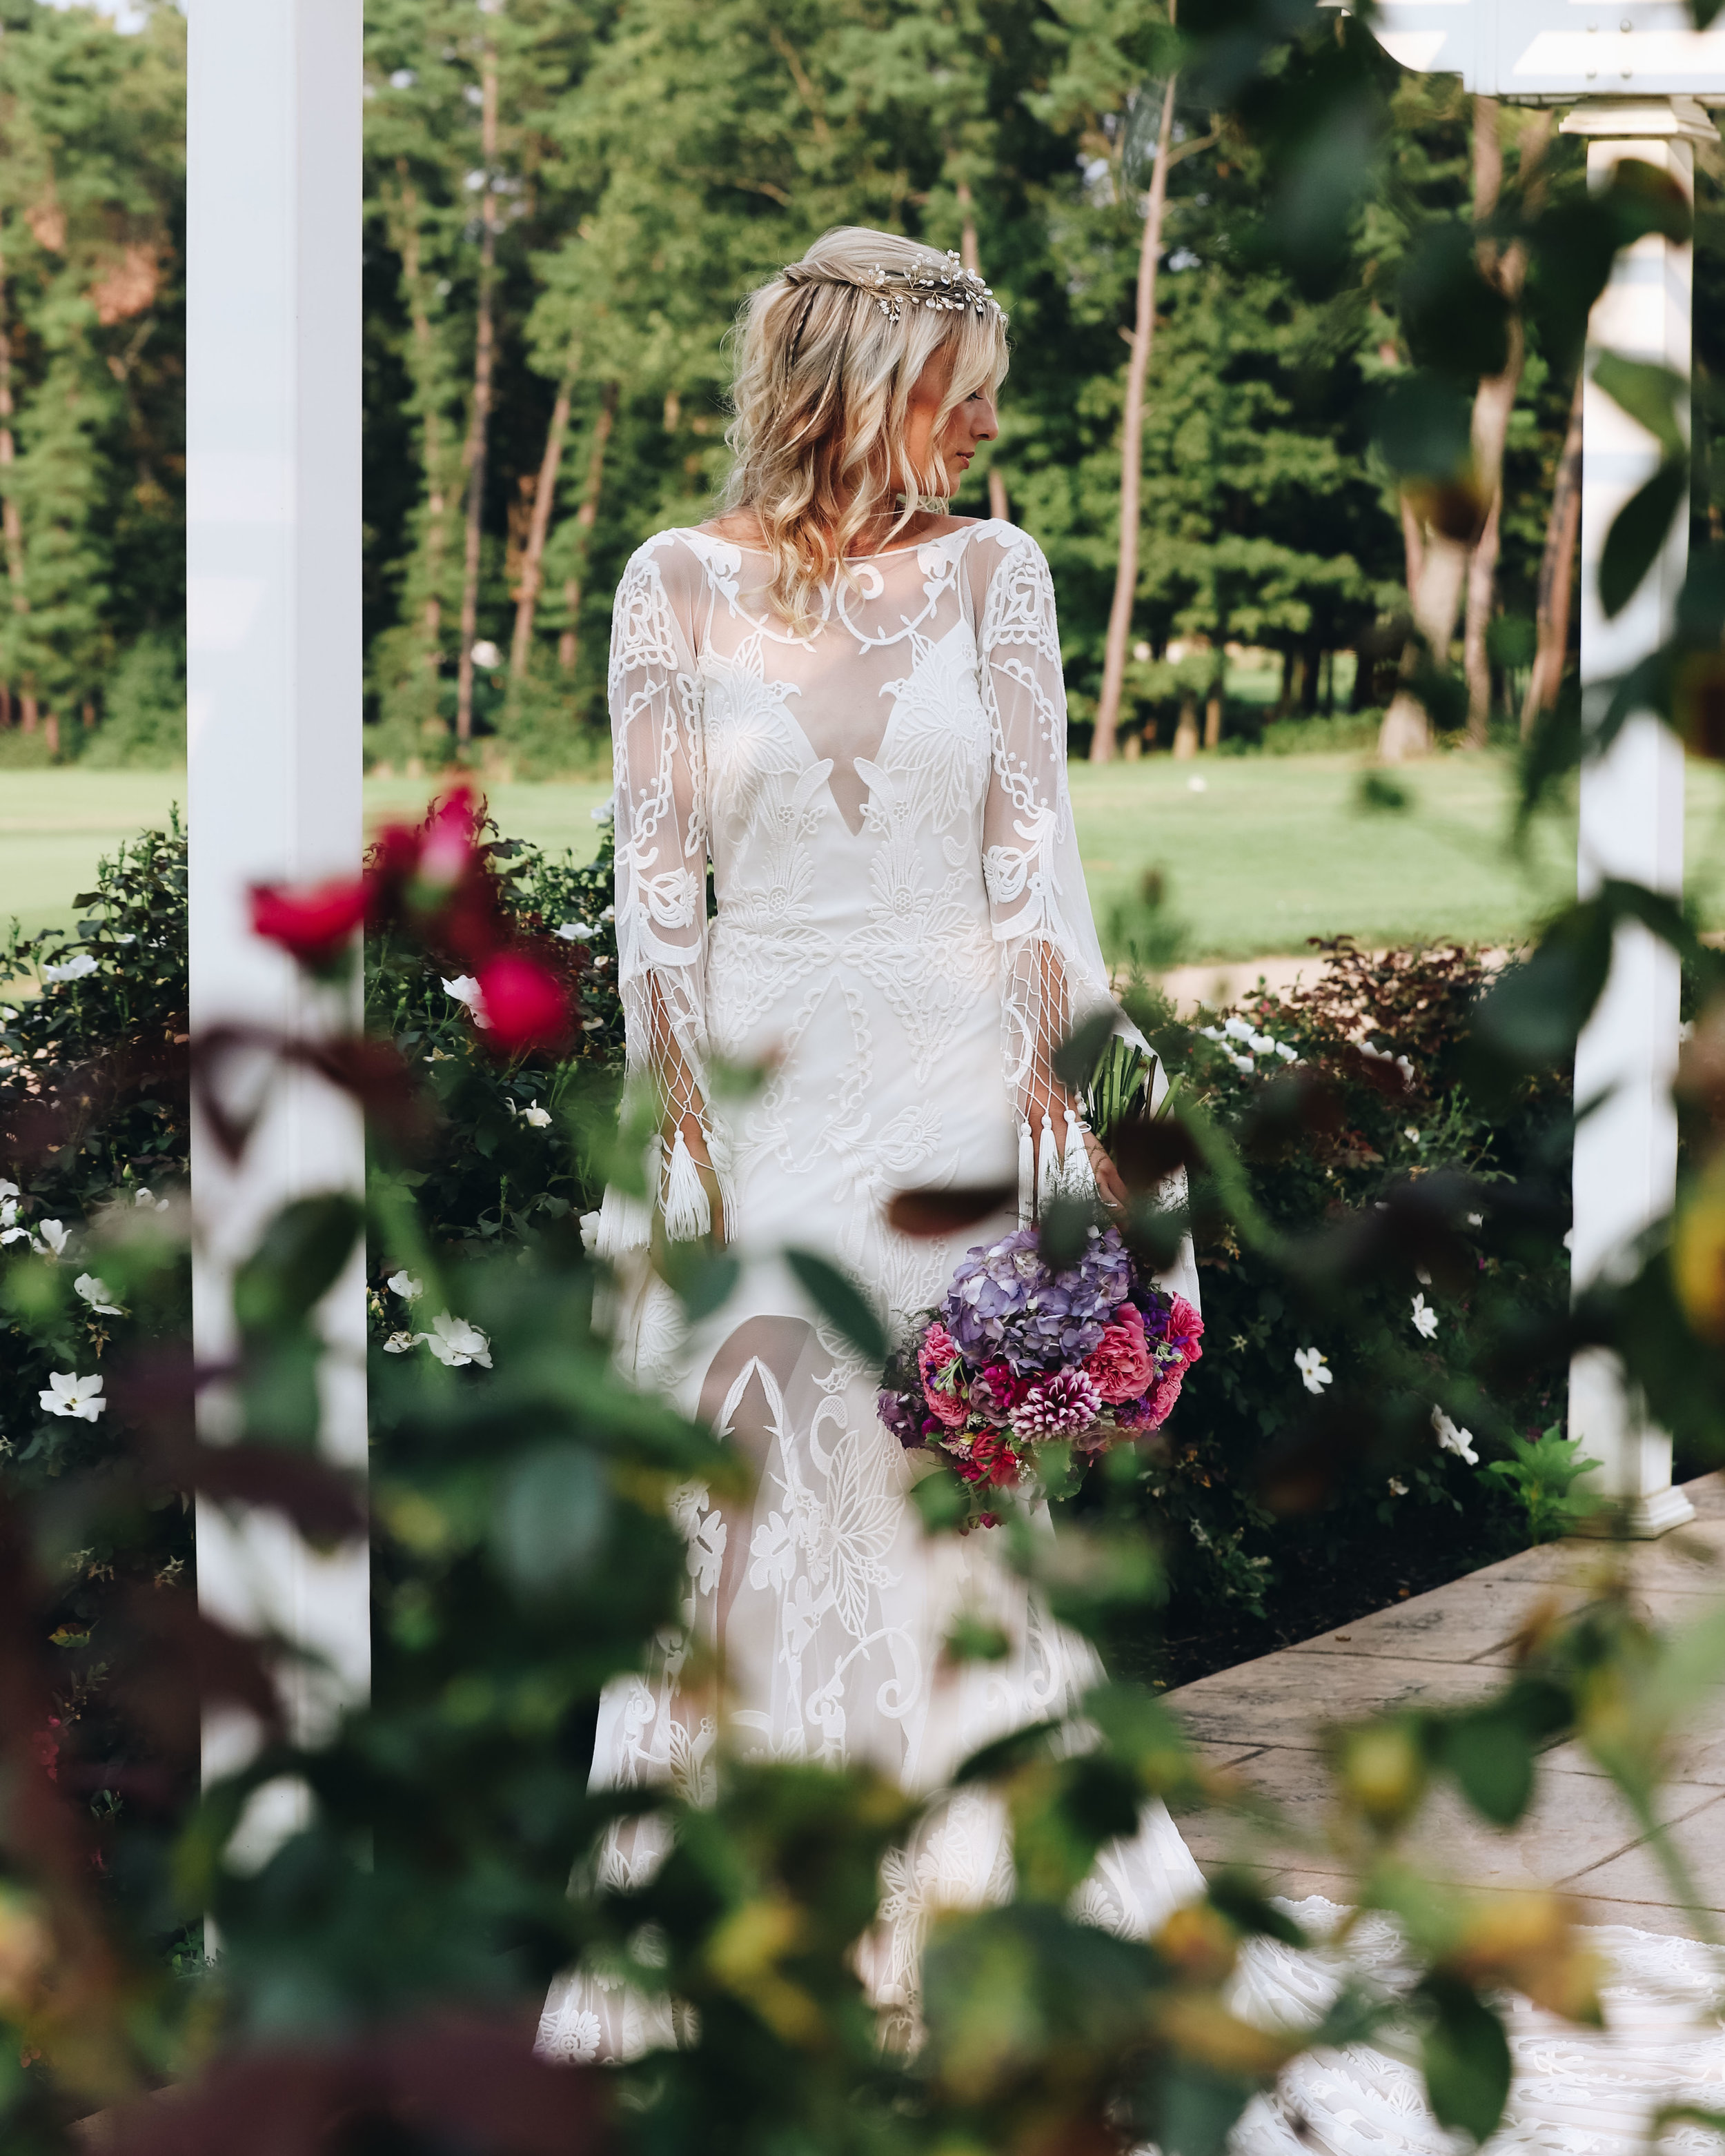 Styled shoot across america nj-98.jpg